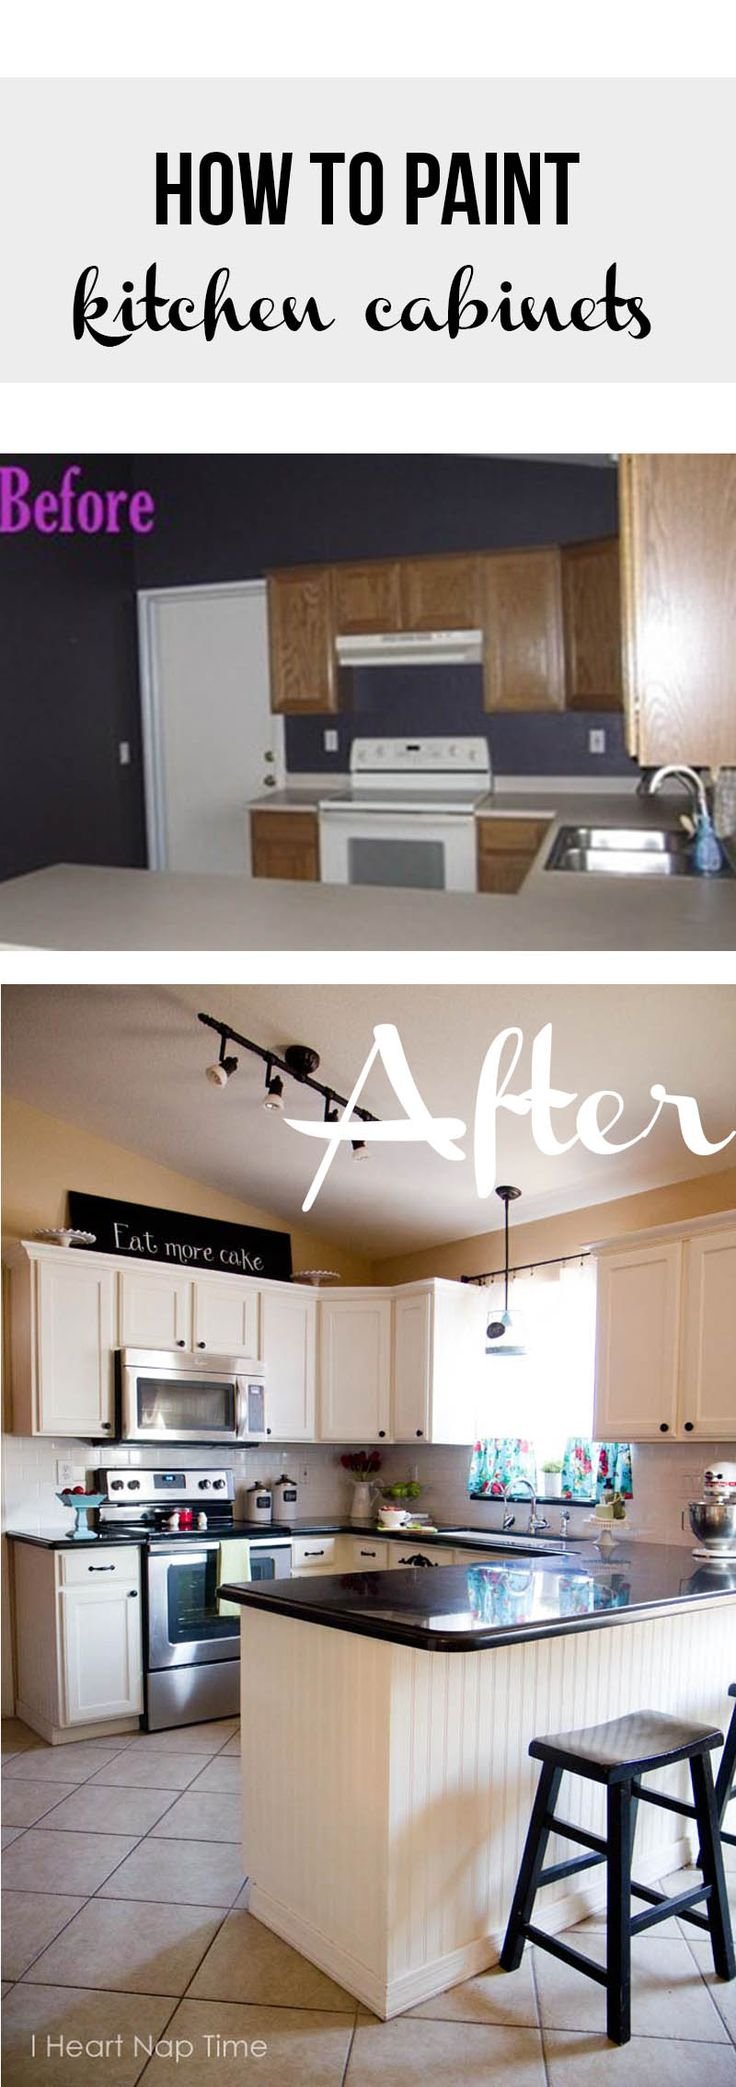 How to paint kitchen cabinets white -